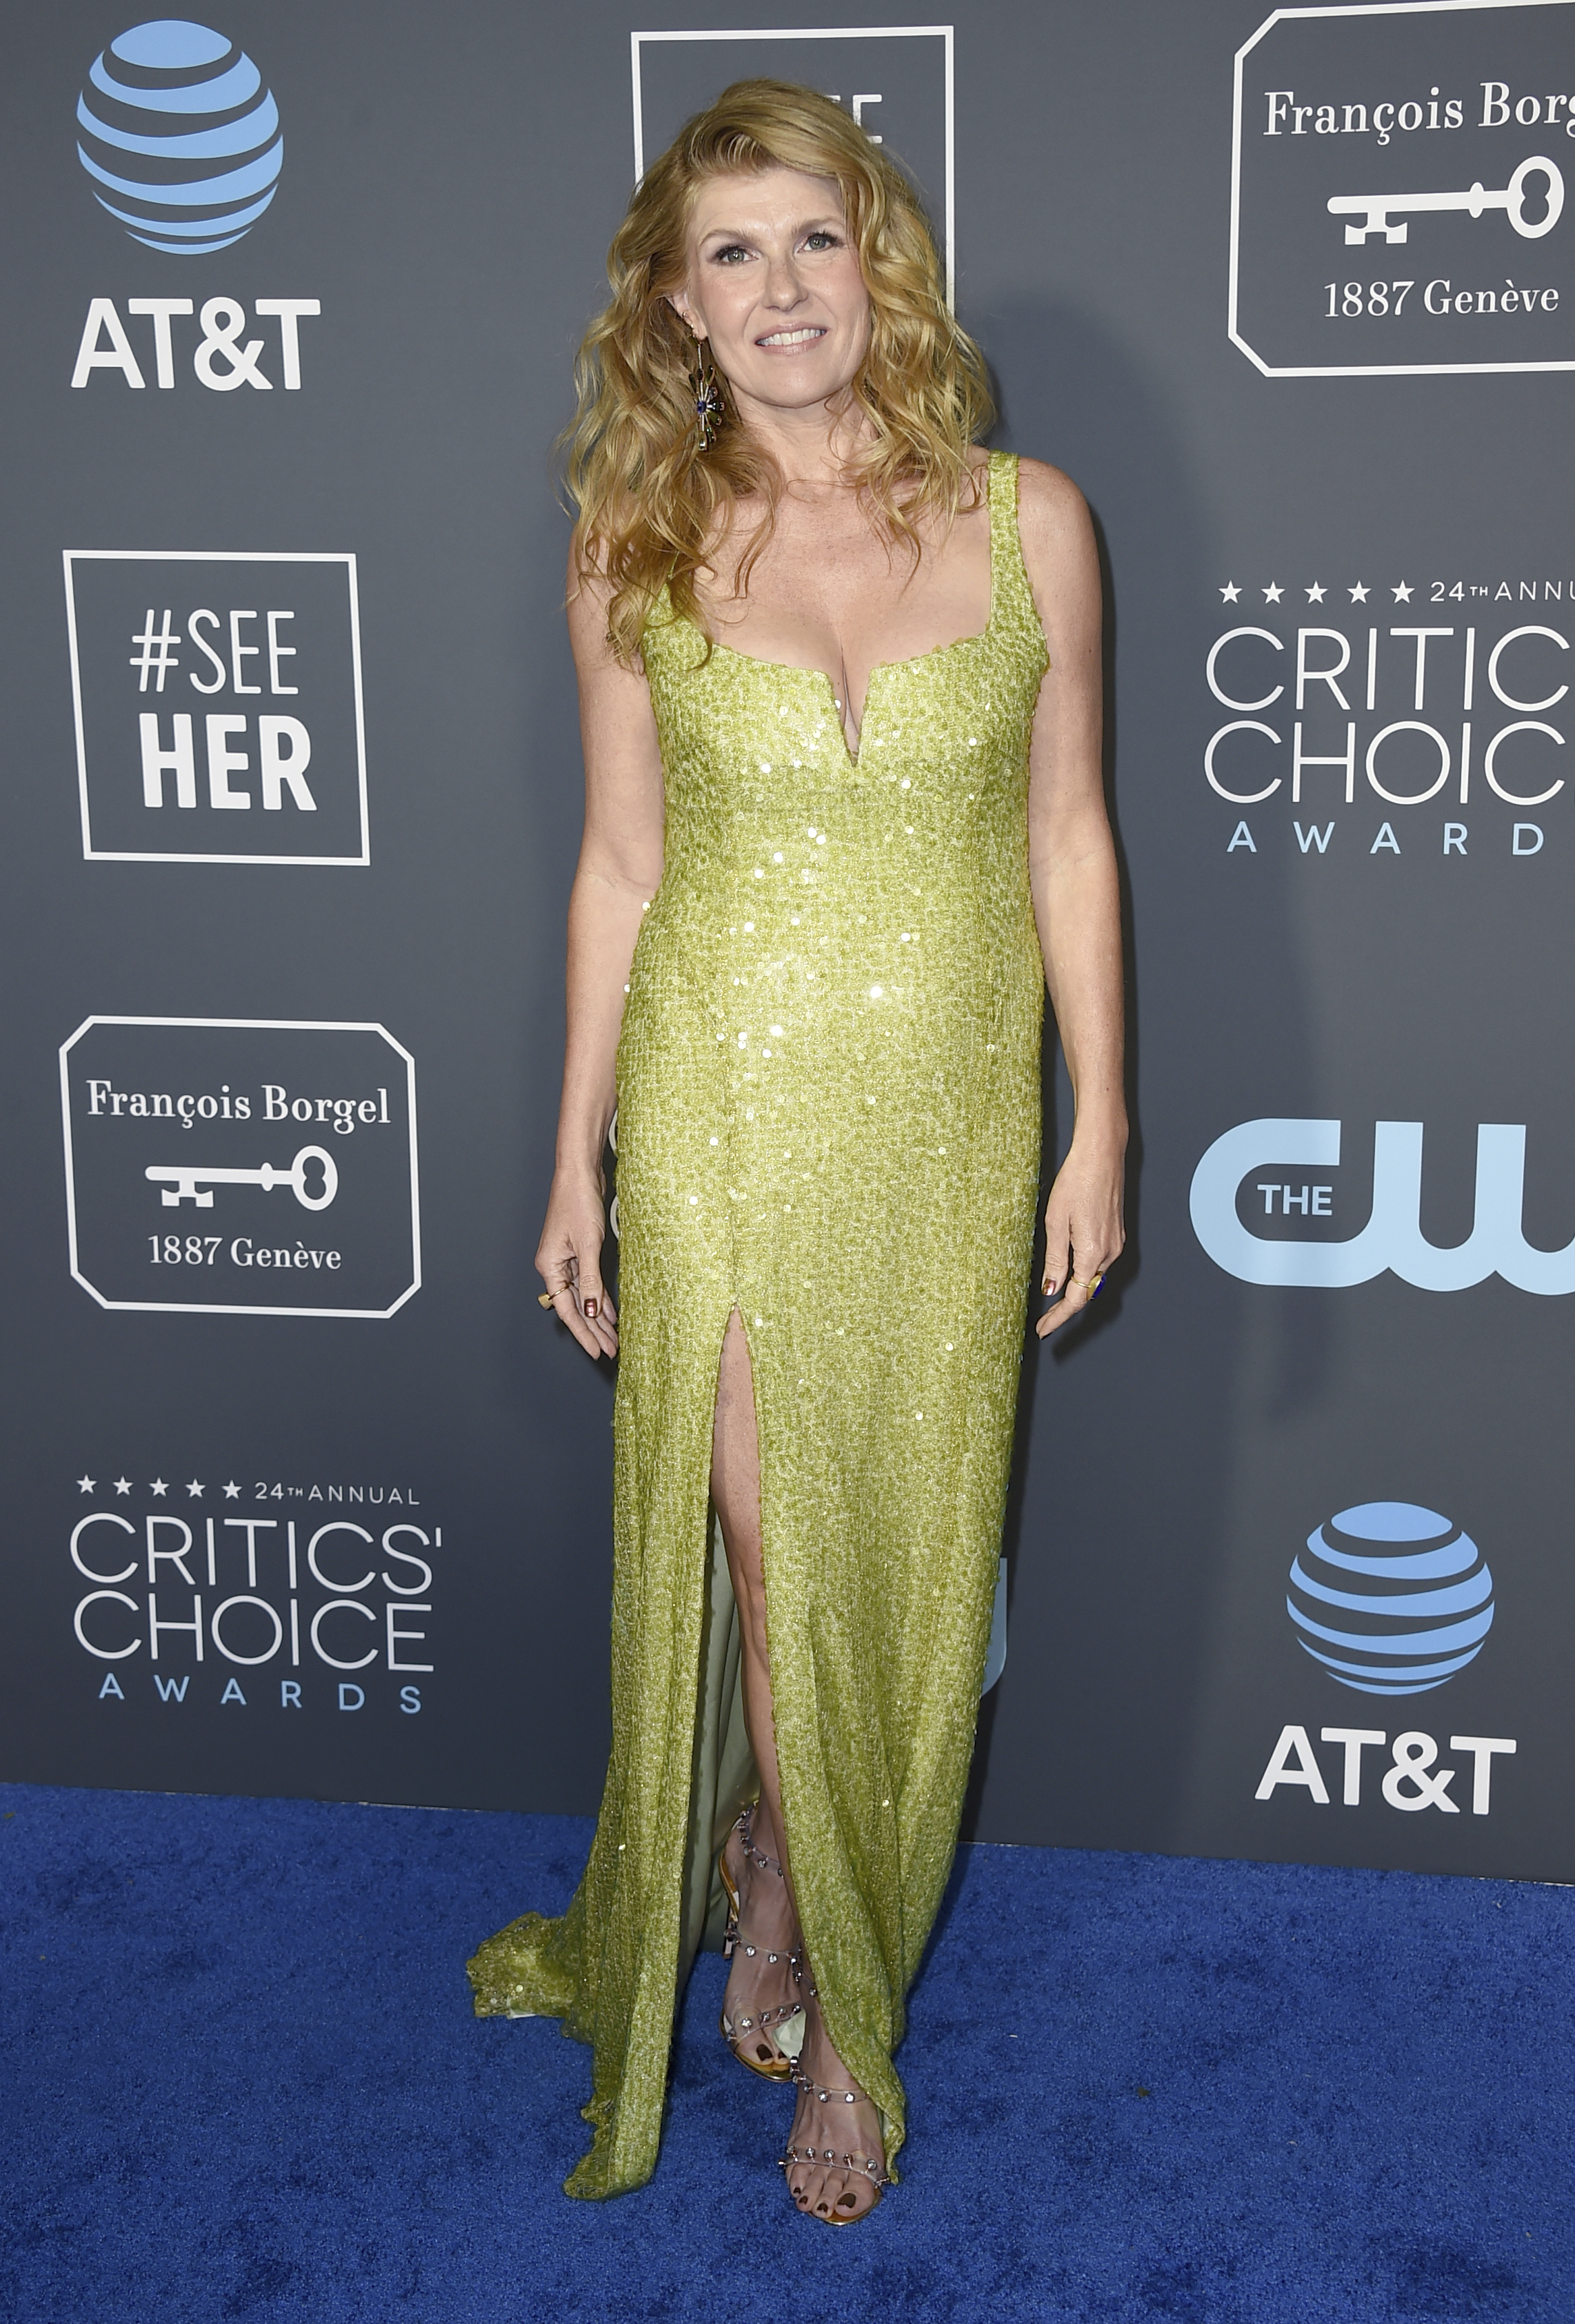 Connie Britton arrives at the 24th annual Critics' Choice Awards